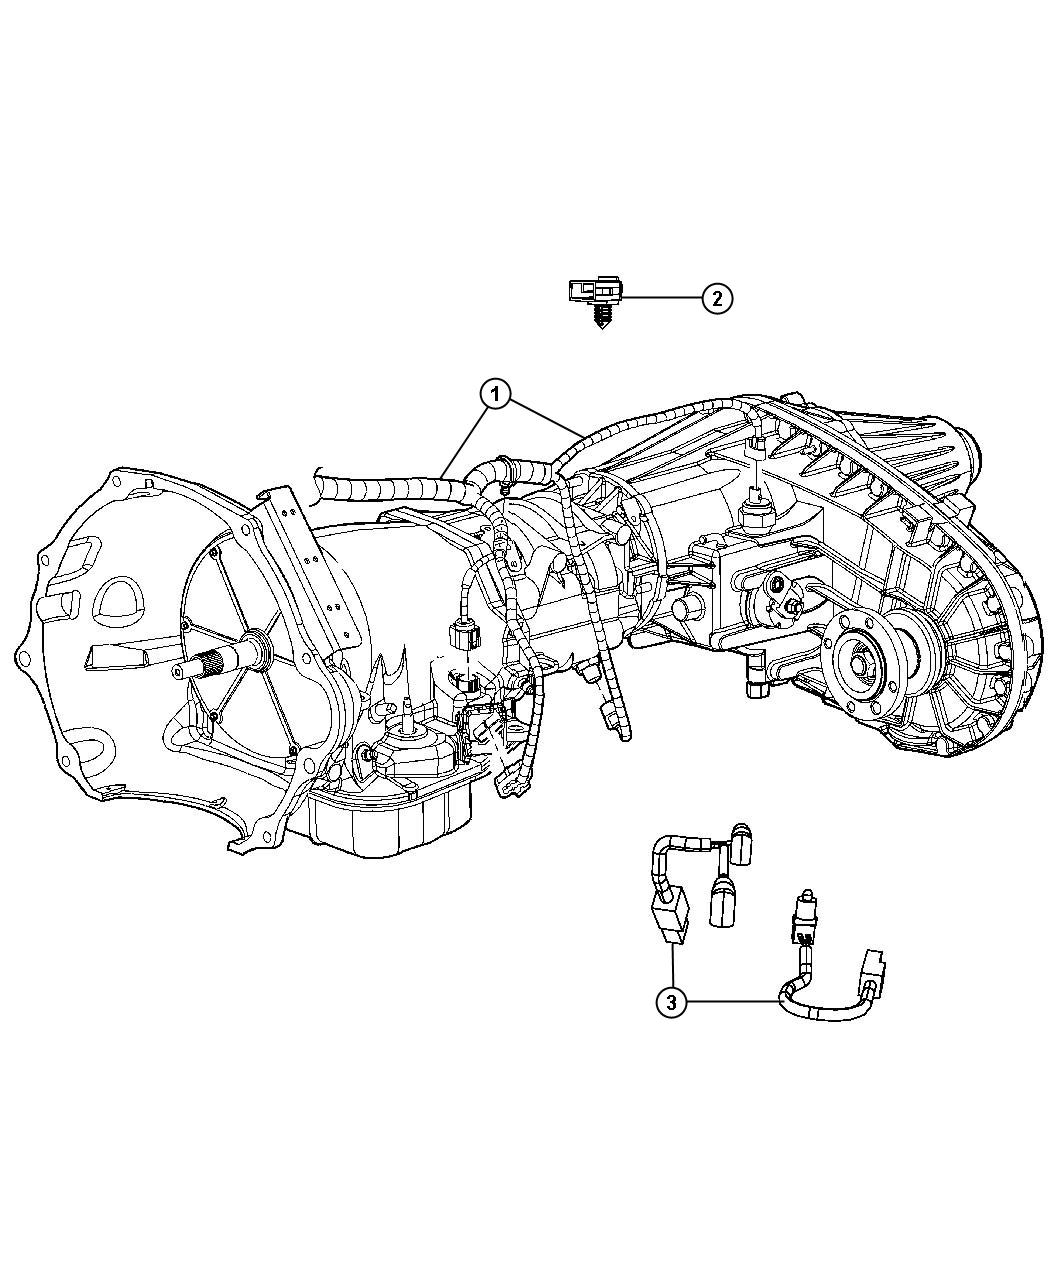 Ram Wiring Transmission Elec Shift On The Fly